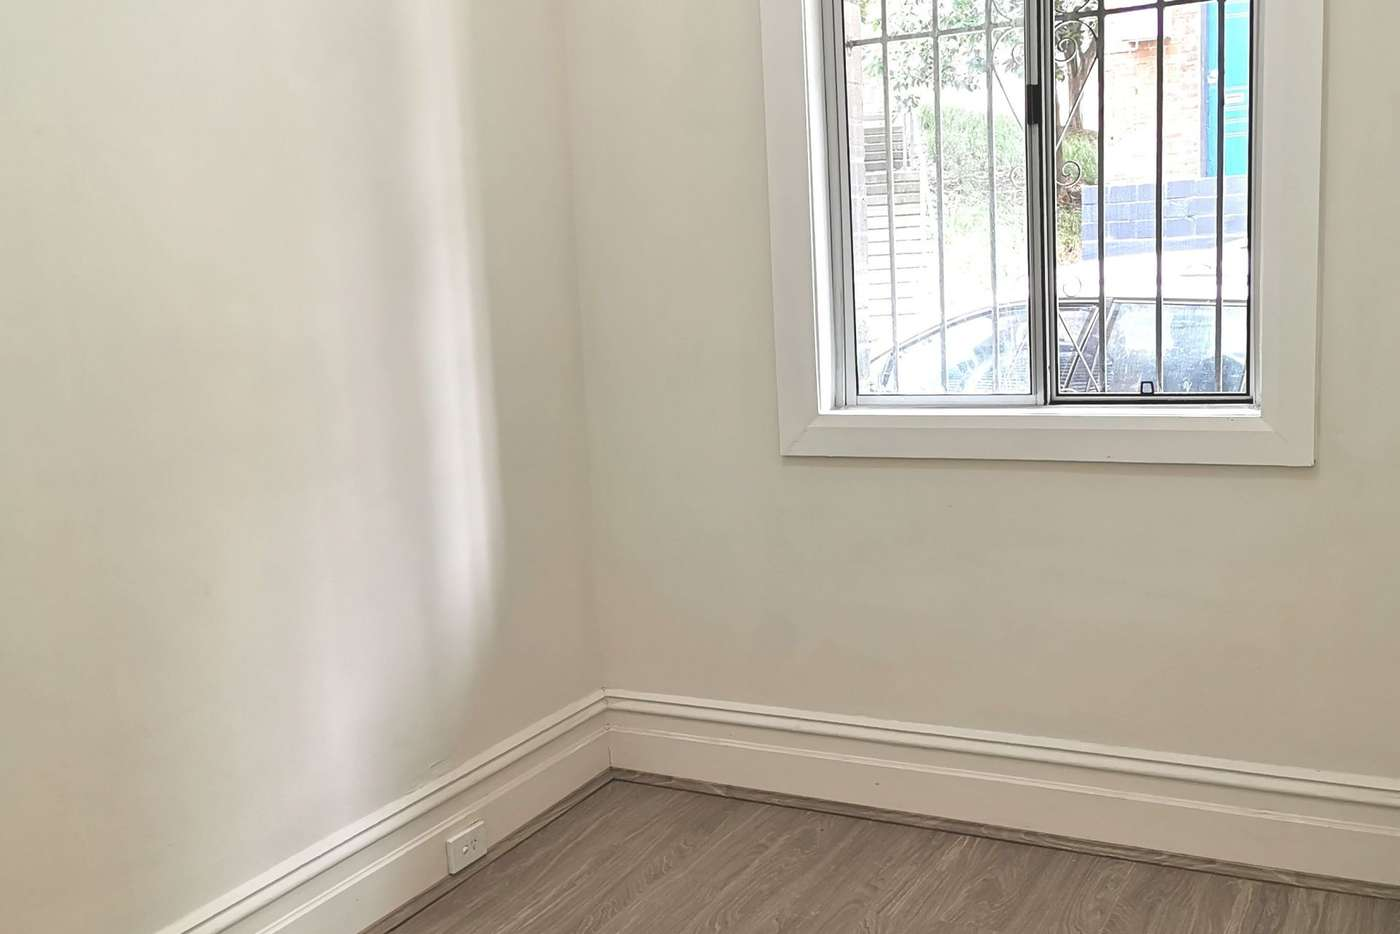 Sixth view of Homely townhouse listing, 15 Samuel Street, Surry Hills NSW 2010